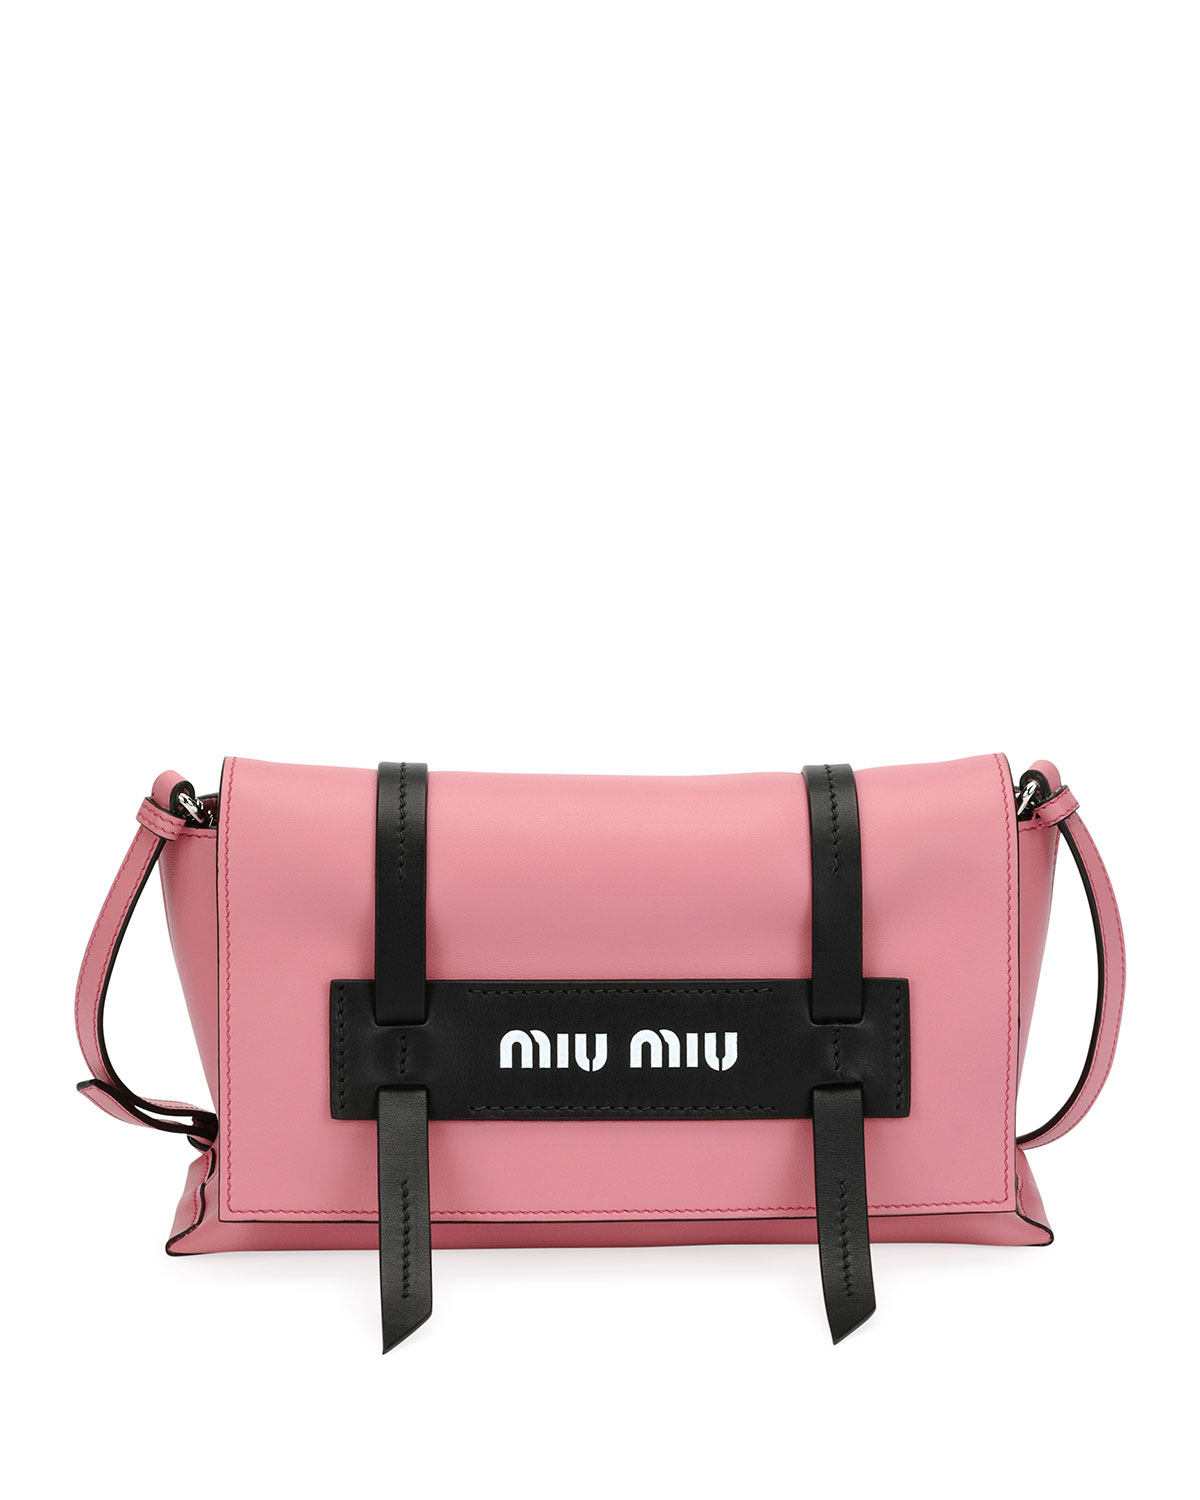 2c03d5ff9f59 Miu Miu Calf Leather Logo Flap Crossbody Bag